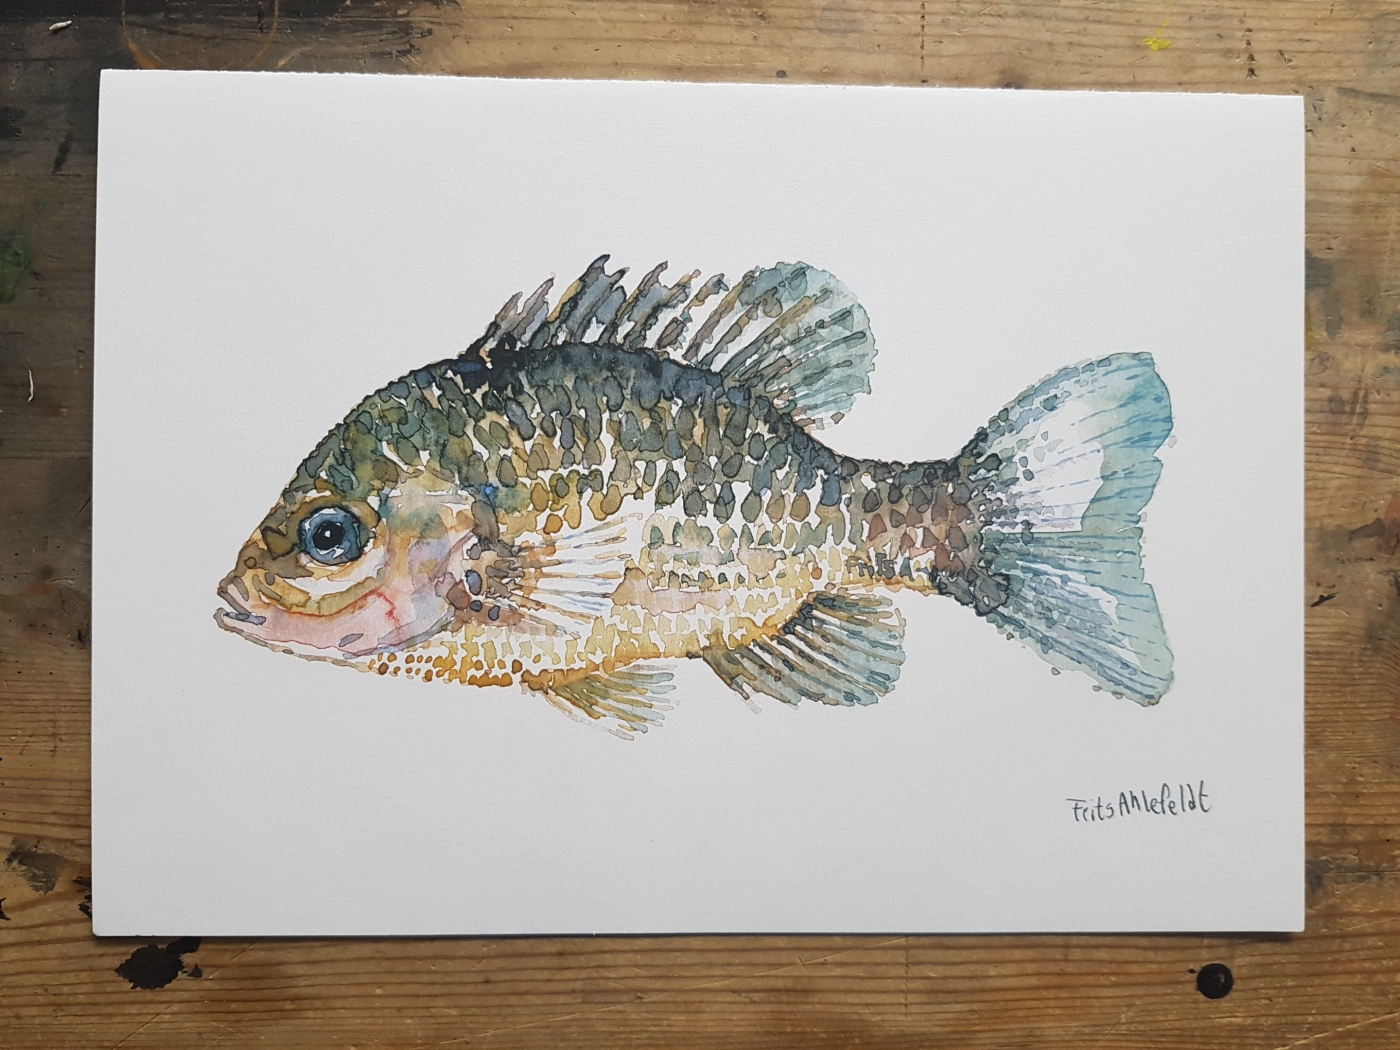 Fish Watercolor artprint by Frits Ahlefeldt